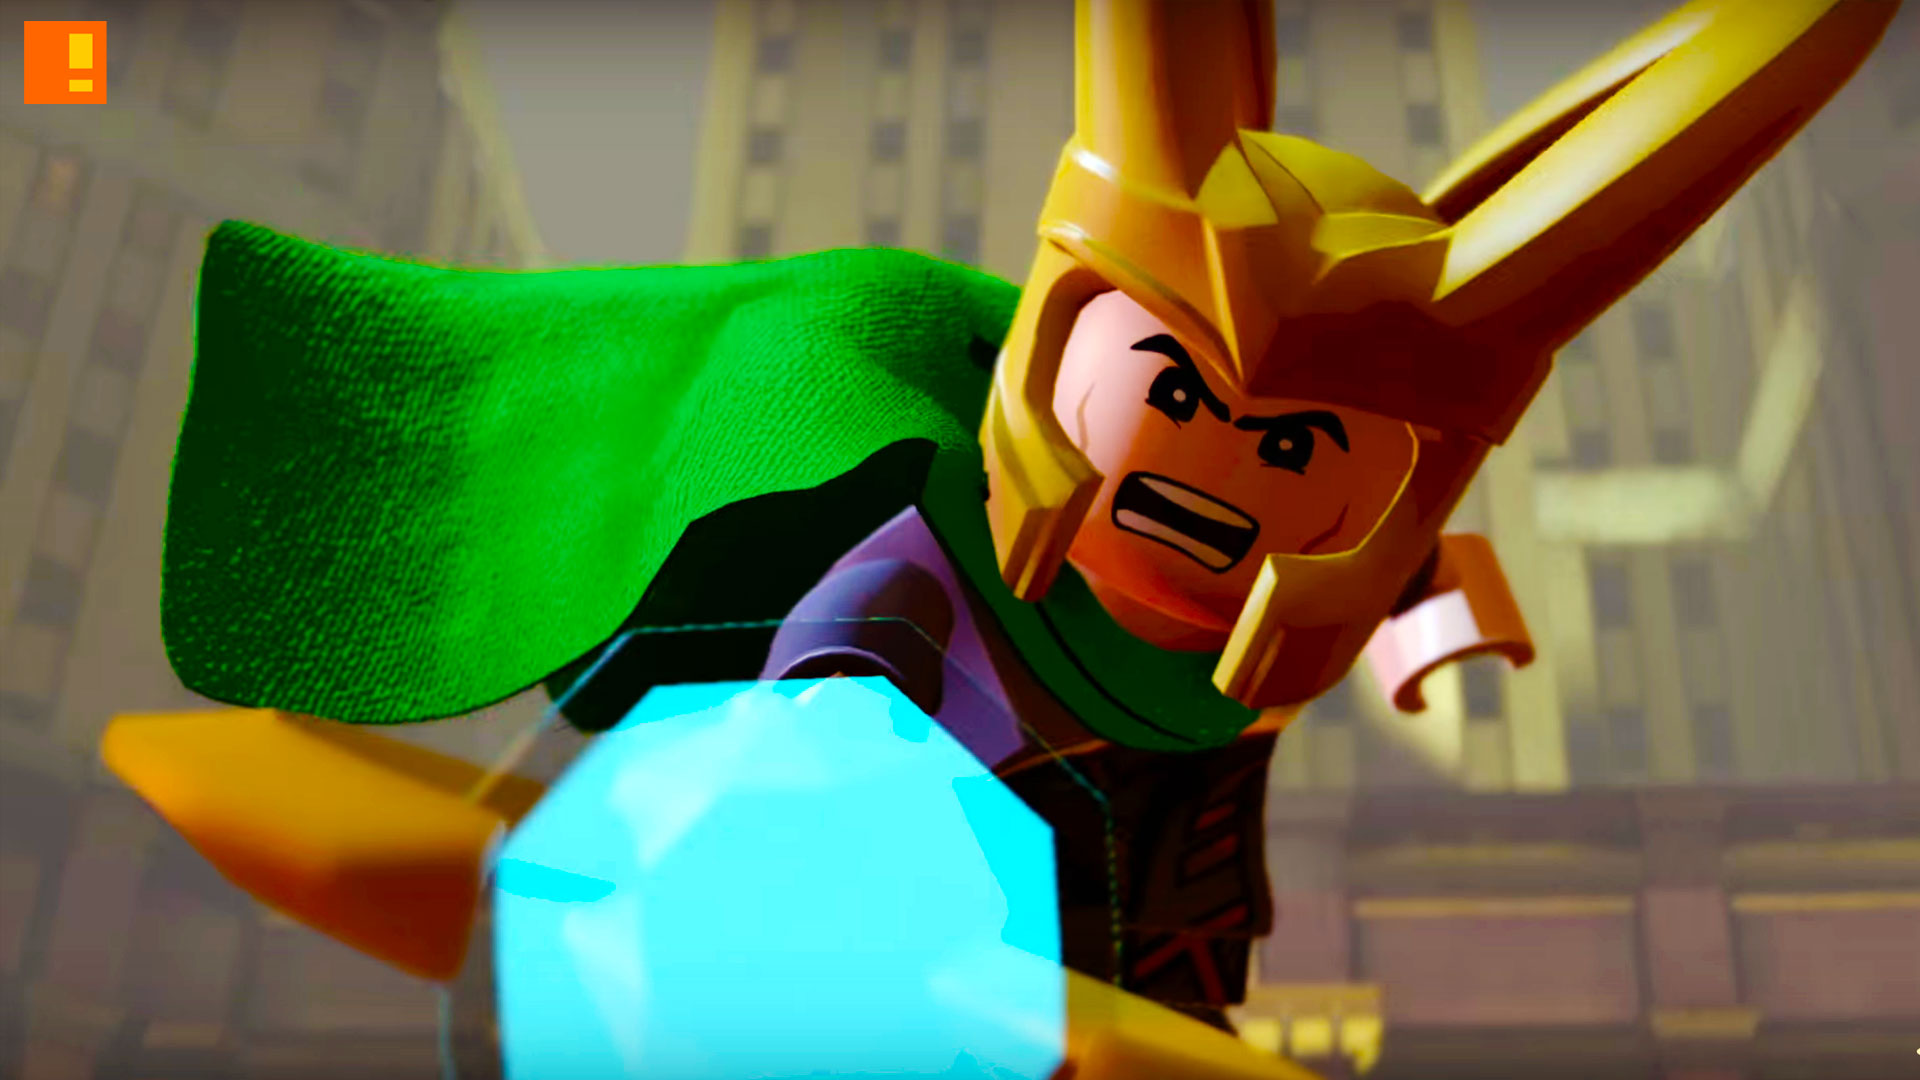 High Quality Loki. Lego. Marvel. Avengers. The Action Pixel. @theactionpixel